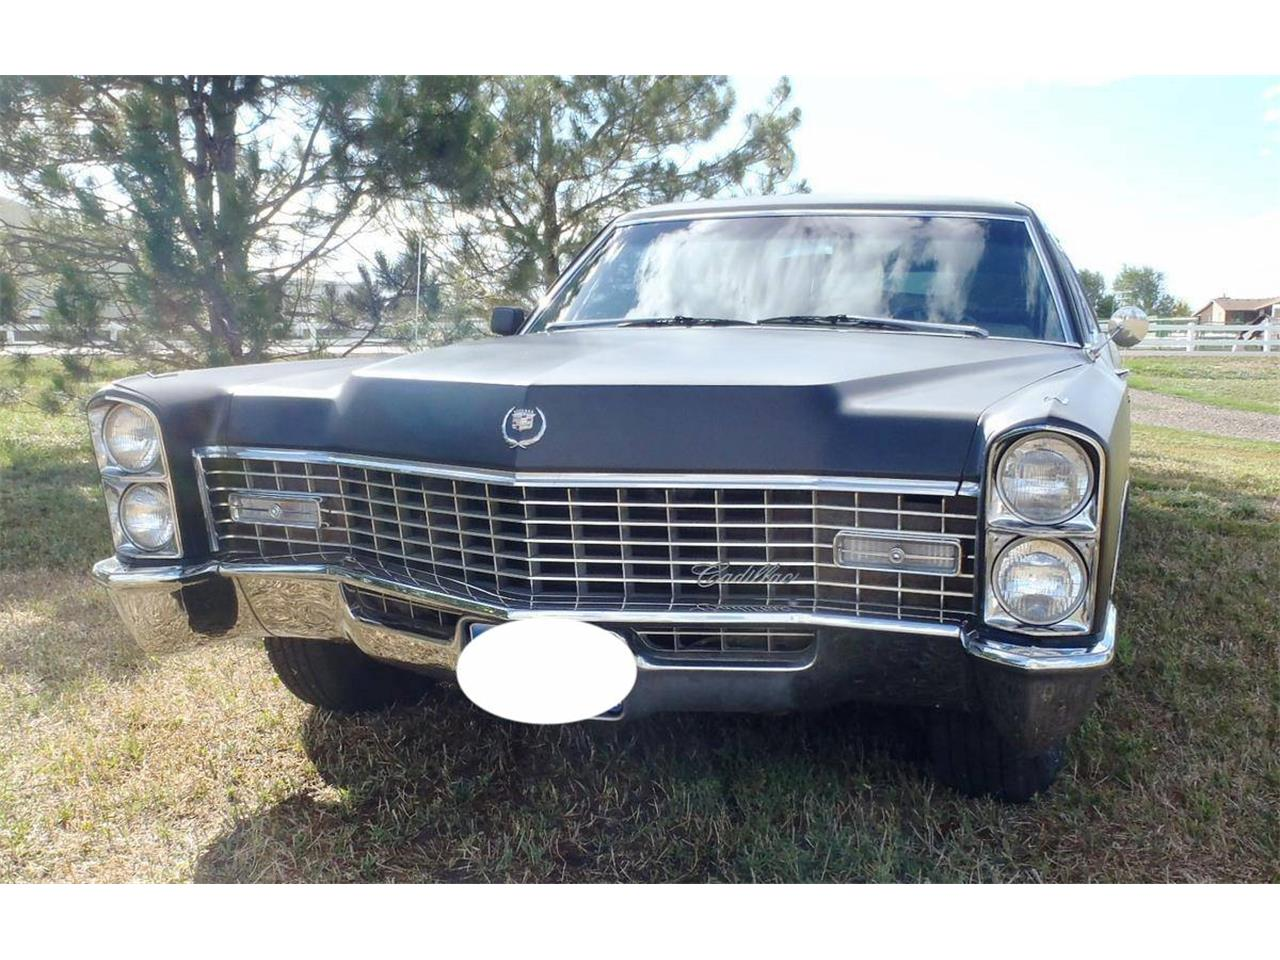 Large Picture of Classic '67 Cadillac Fleetwood Limousine located in California - OD55